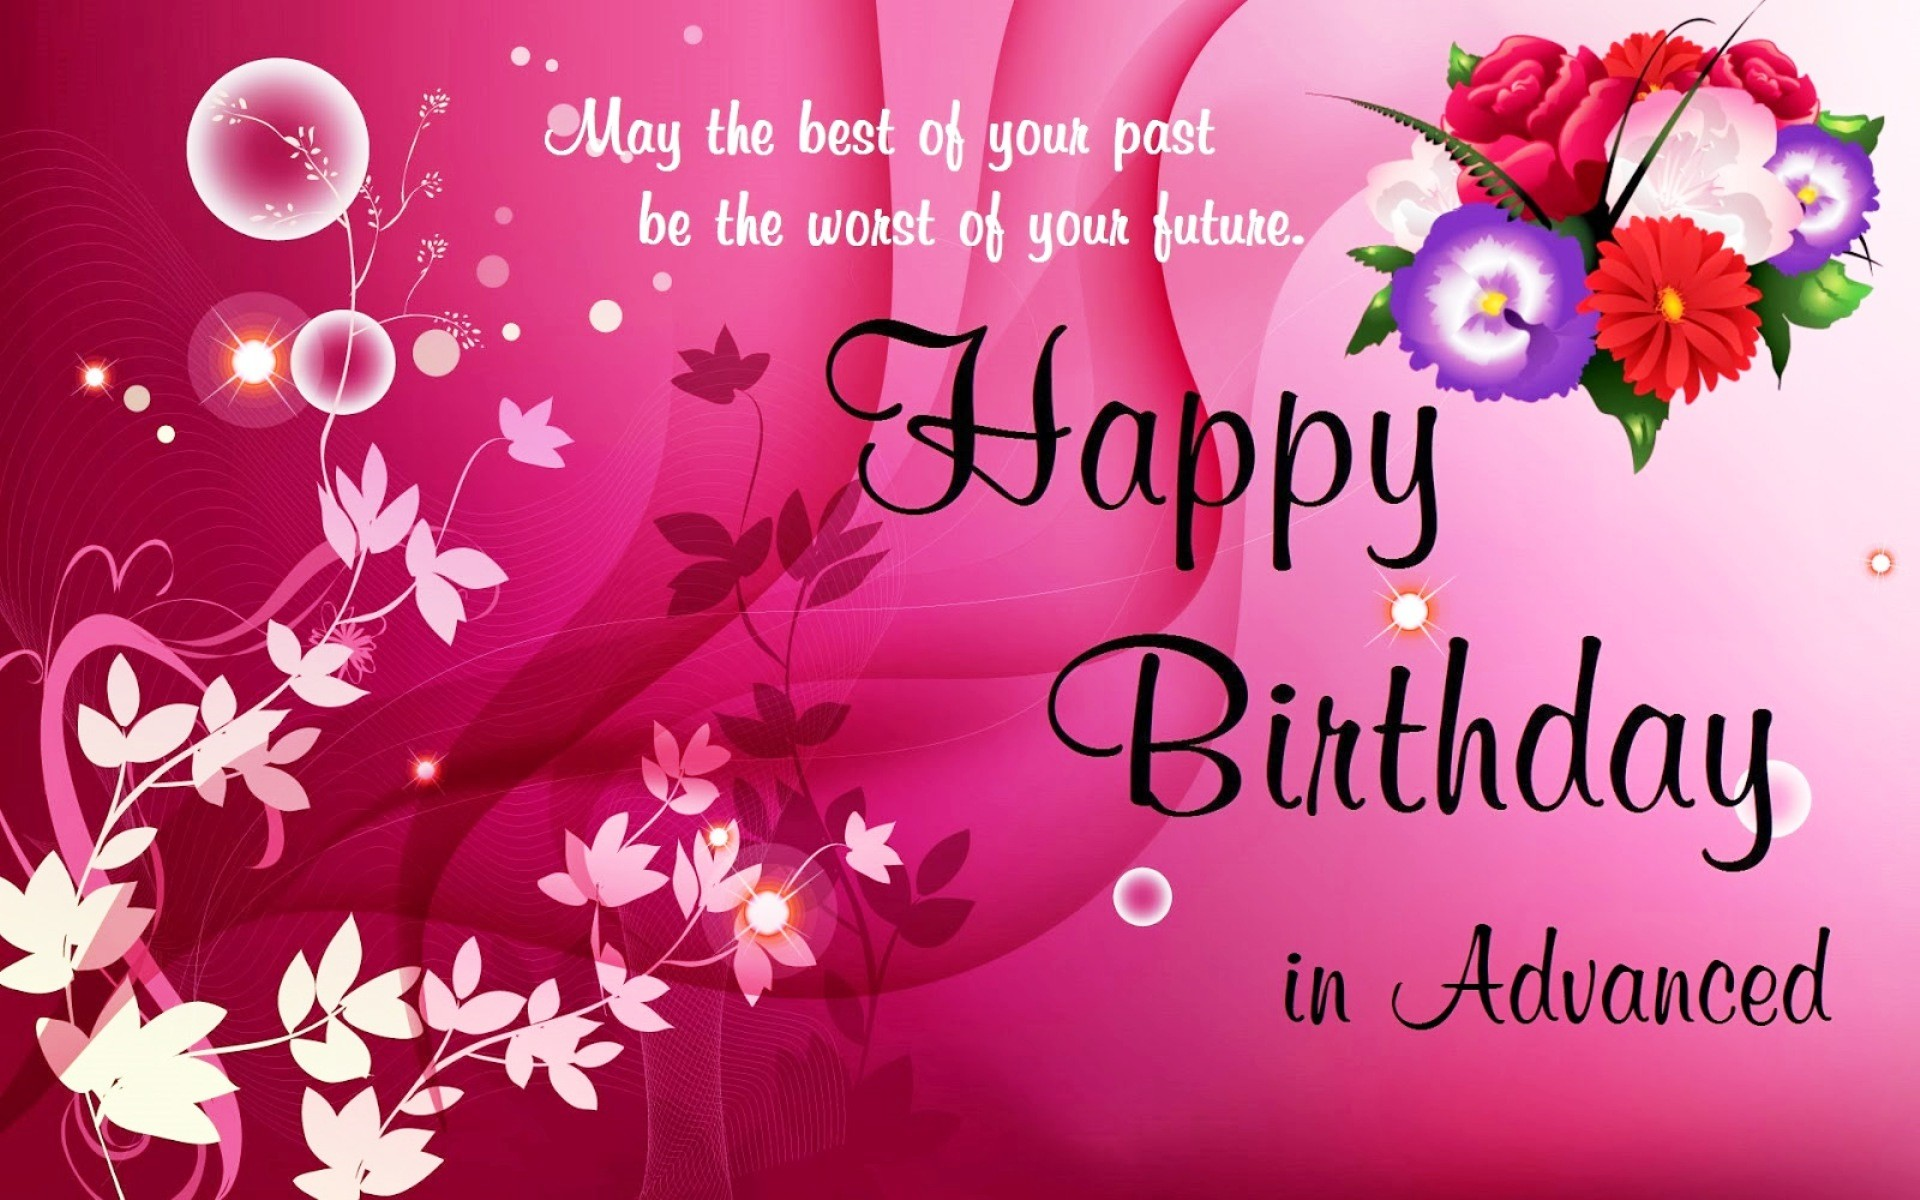 birthday wishes poems for friends ; meaningful-birthday-wishes-fantastic-meaningful-birthday-poems-that-can-make-your-friends-touched-picture-of-meaningful-birthday-wishes